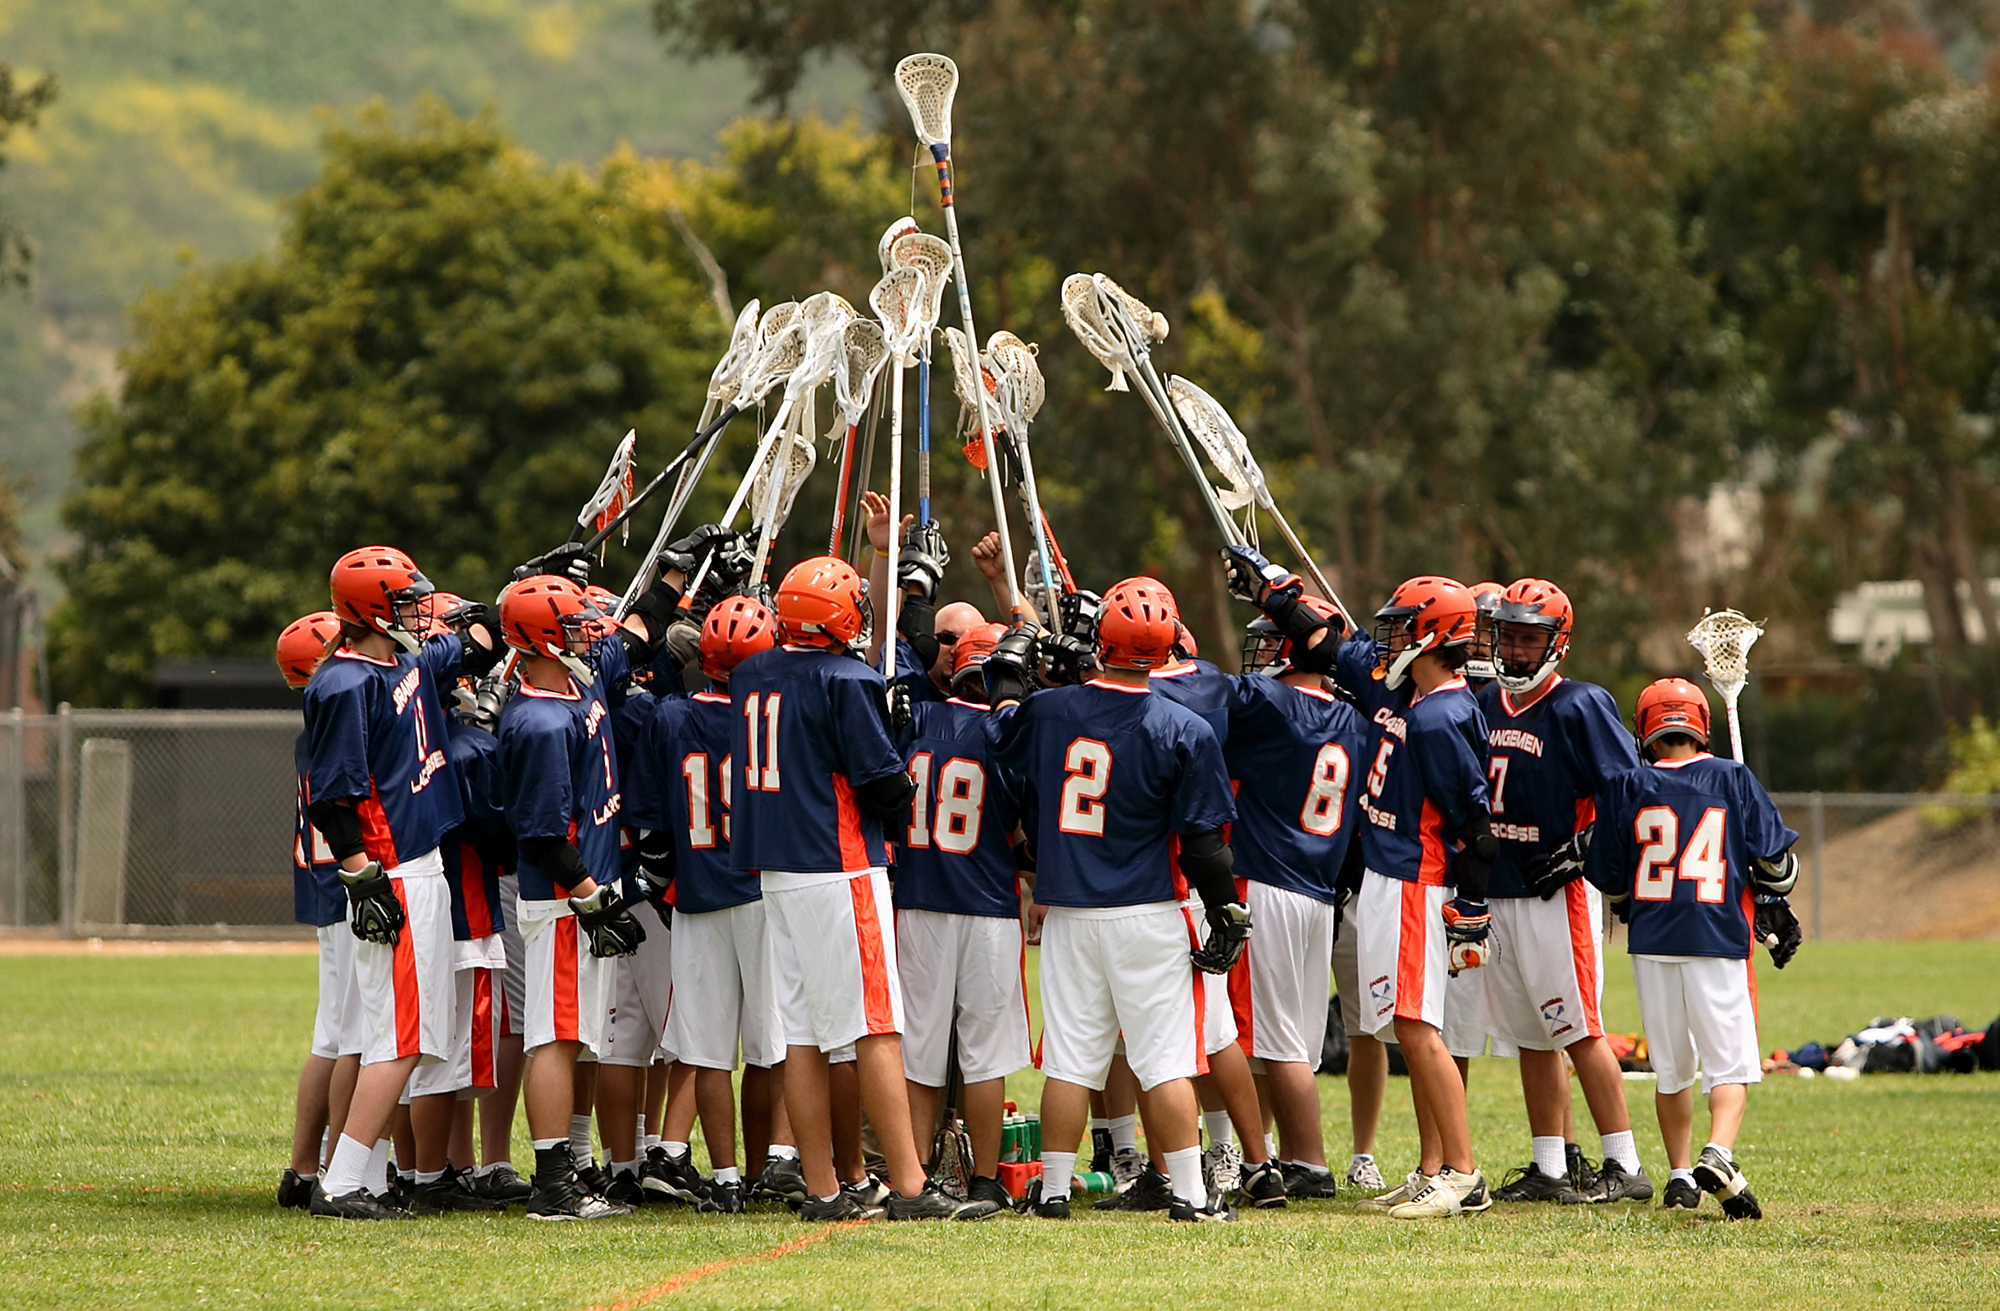 Image of a lacrosse team holding their stick up high prior to the start of the game.